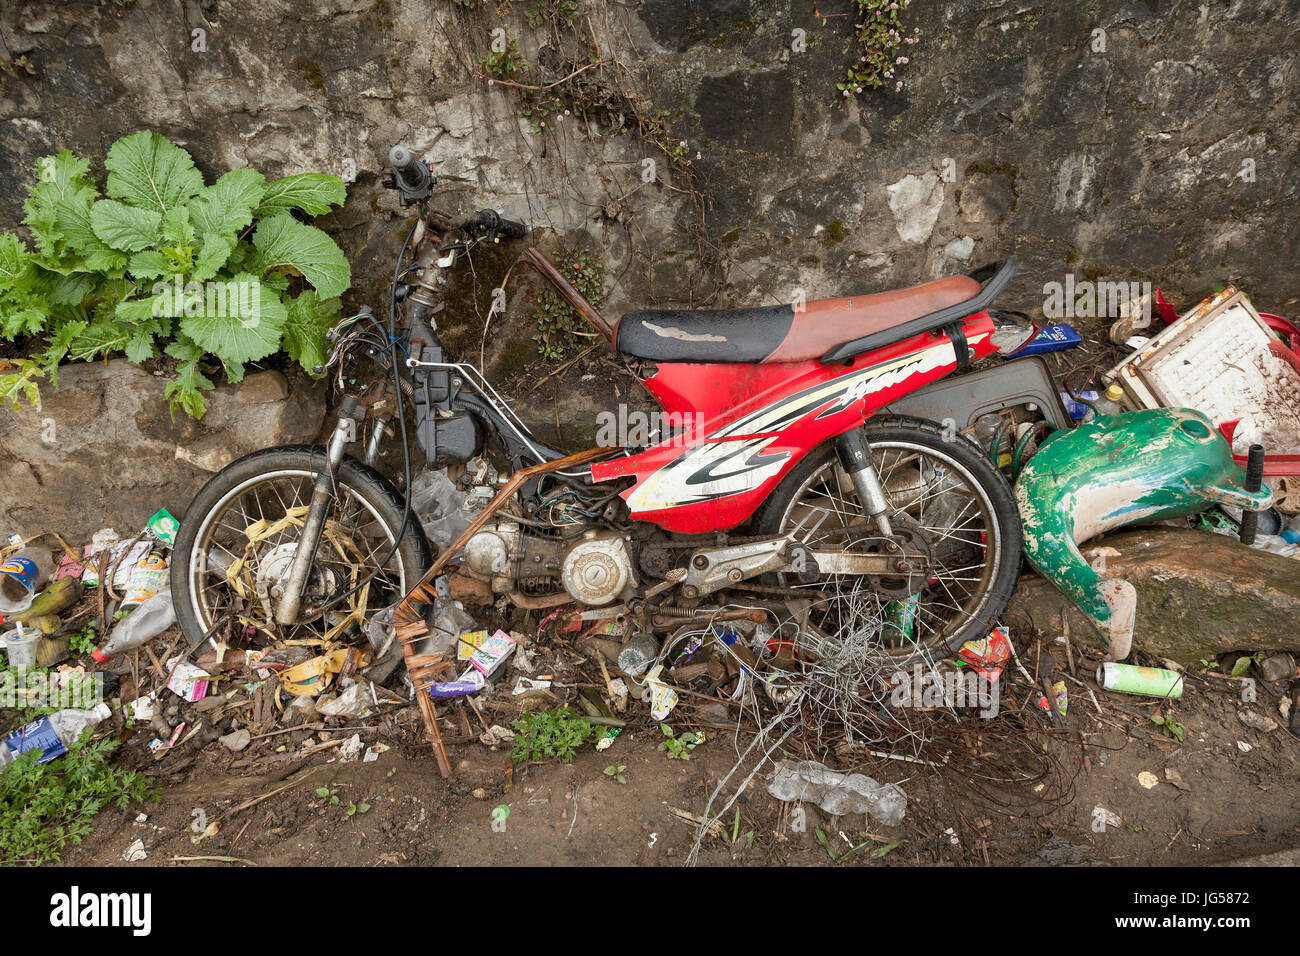 Rubbish including an old motorbike discarded in a roadside ditch, Vietnam. - Stock Image